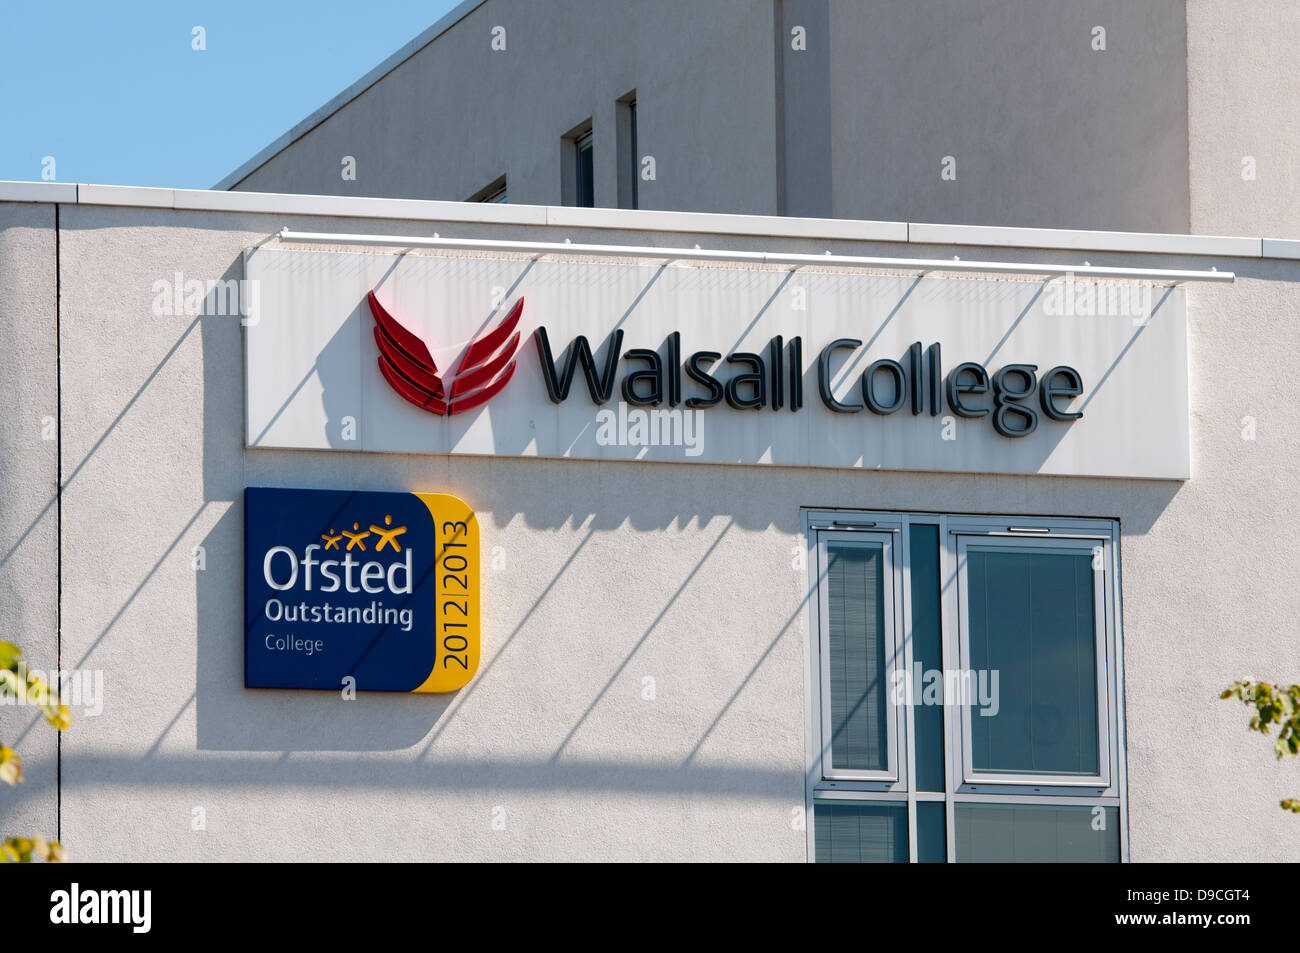 Walsall College, West Midlands, England, UK - Stock Image